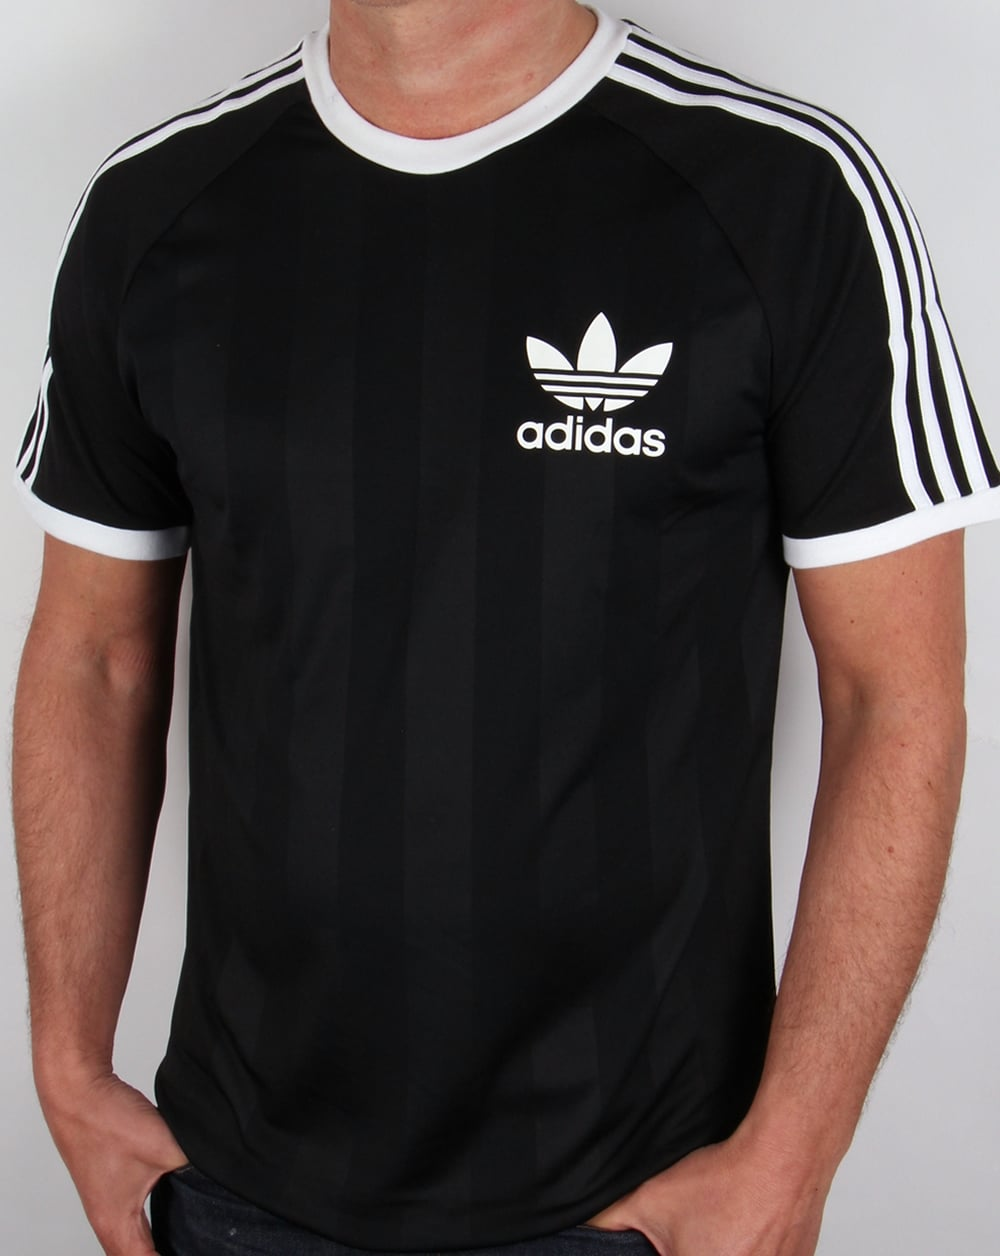 adidas retro t shirt black tee 3 stripes old skool original. Black Bedroom Furniture Sets. Home Design Ideas